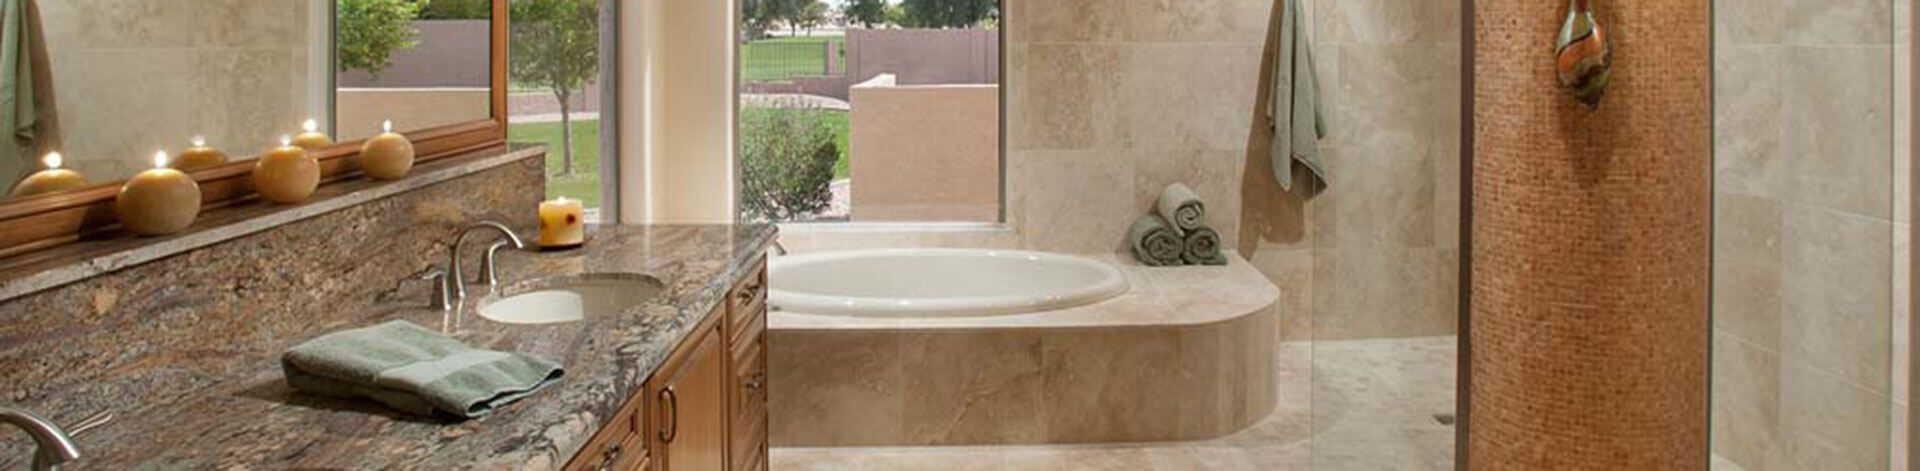 Phoenix Bathroom Remodel Adorable Bathroom Remodeling In Phoenix & Scottsdale  Republic West Remodeling 2017